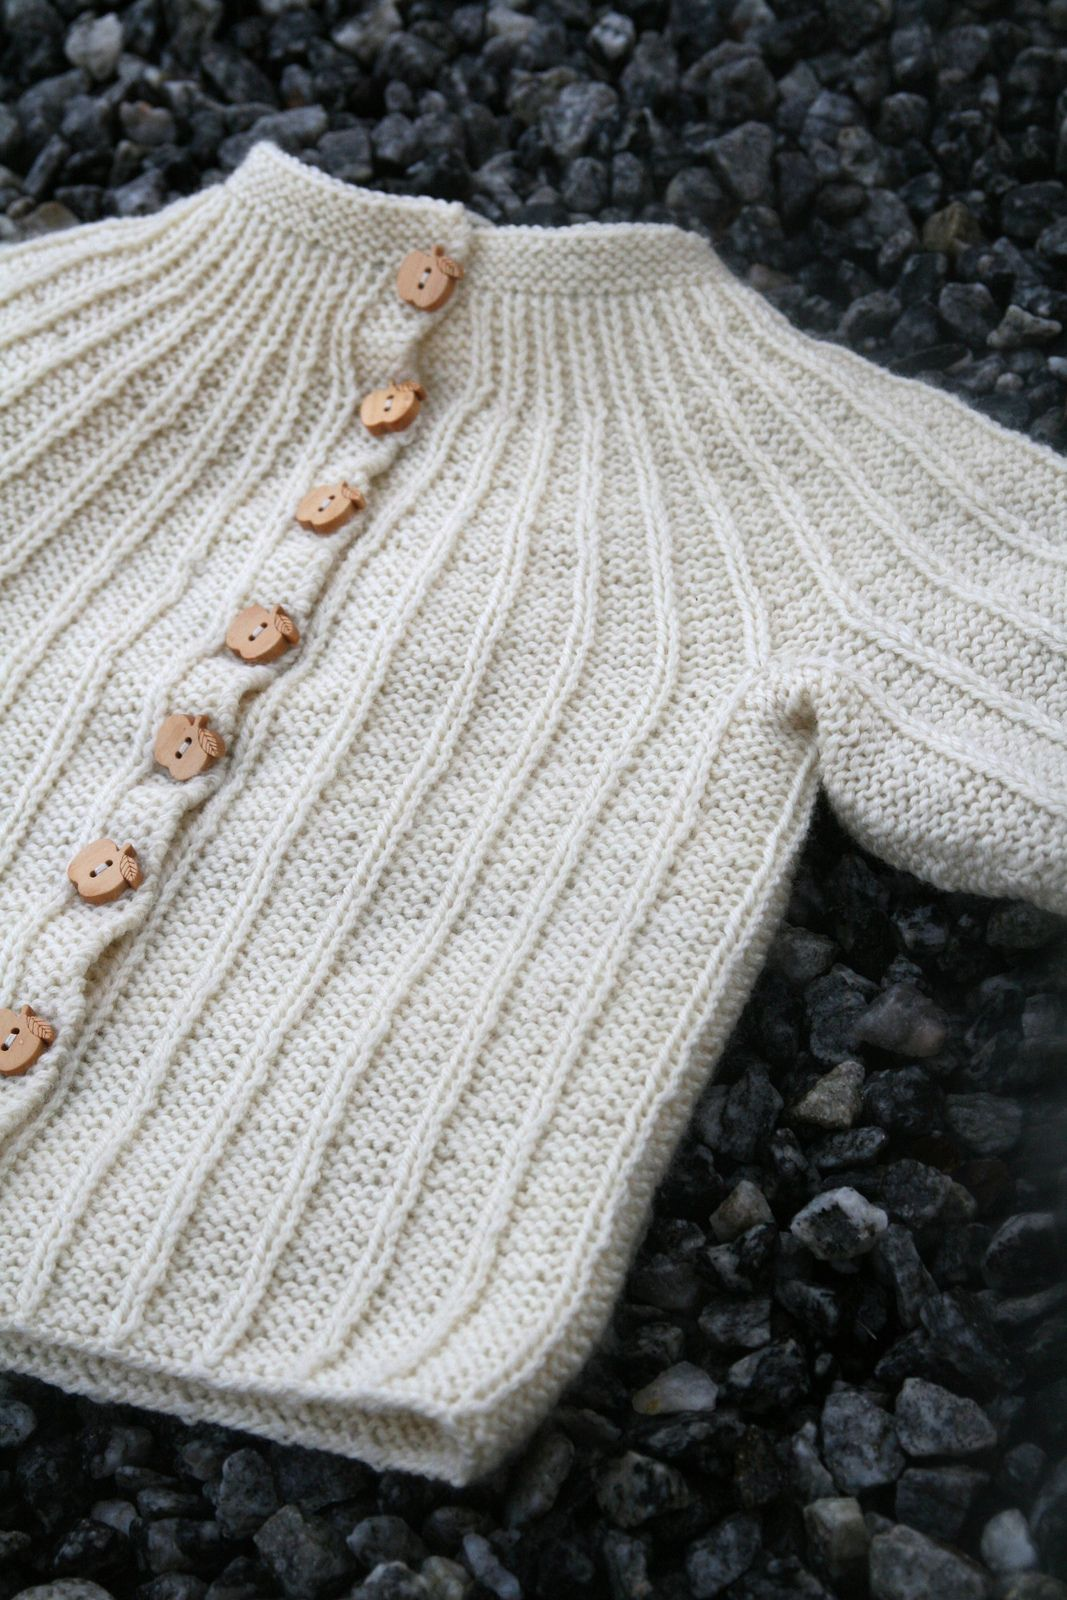 006 | Baby knitting, Crochet and Knit baby sweaters